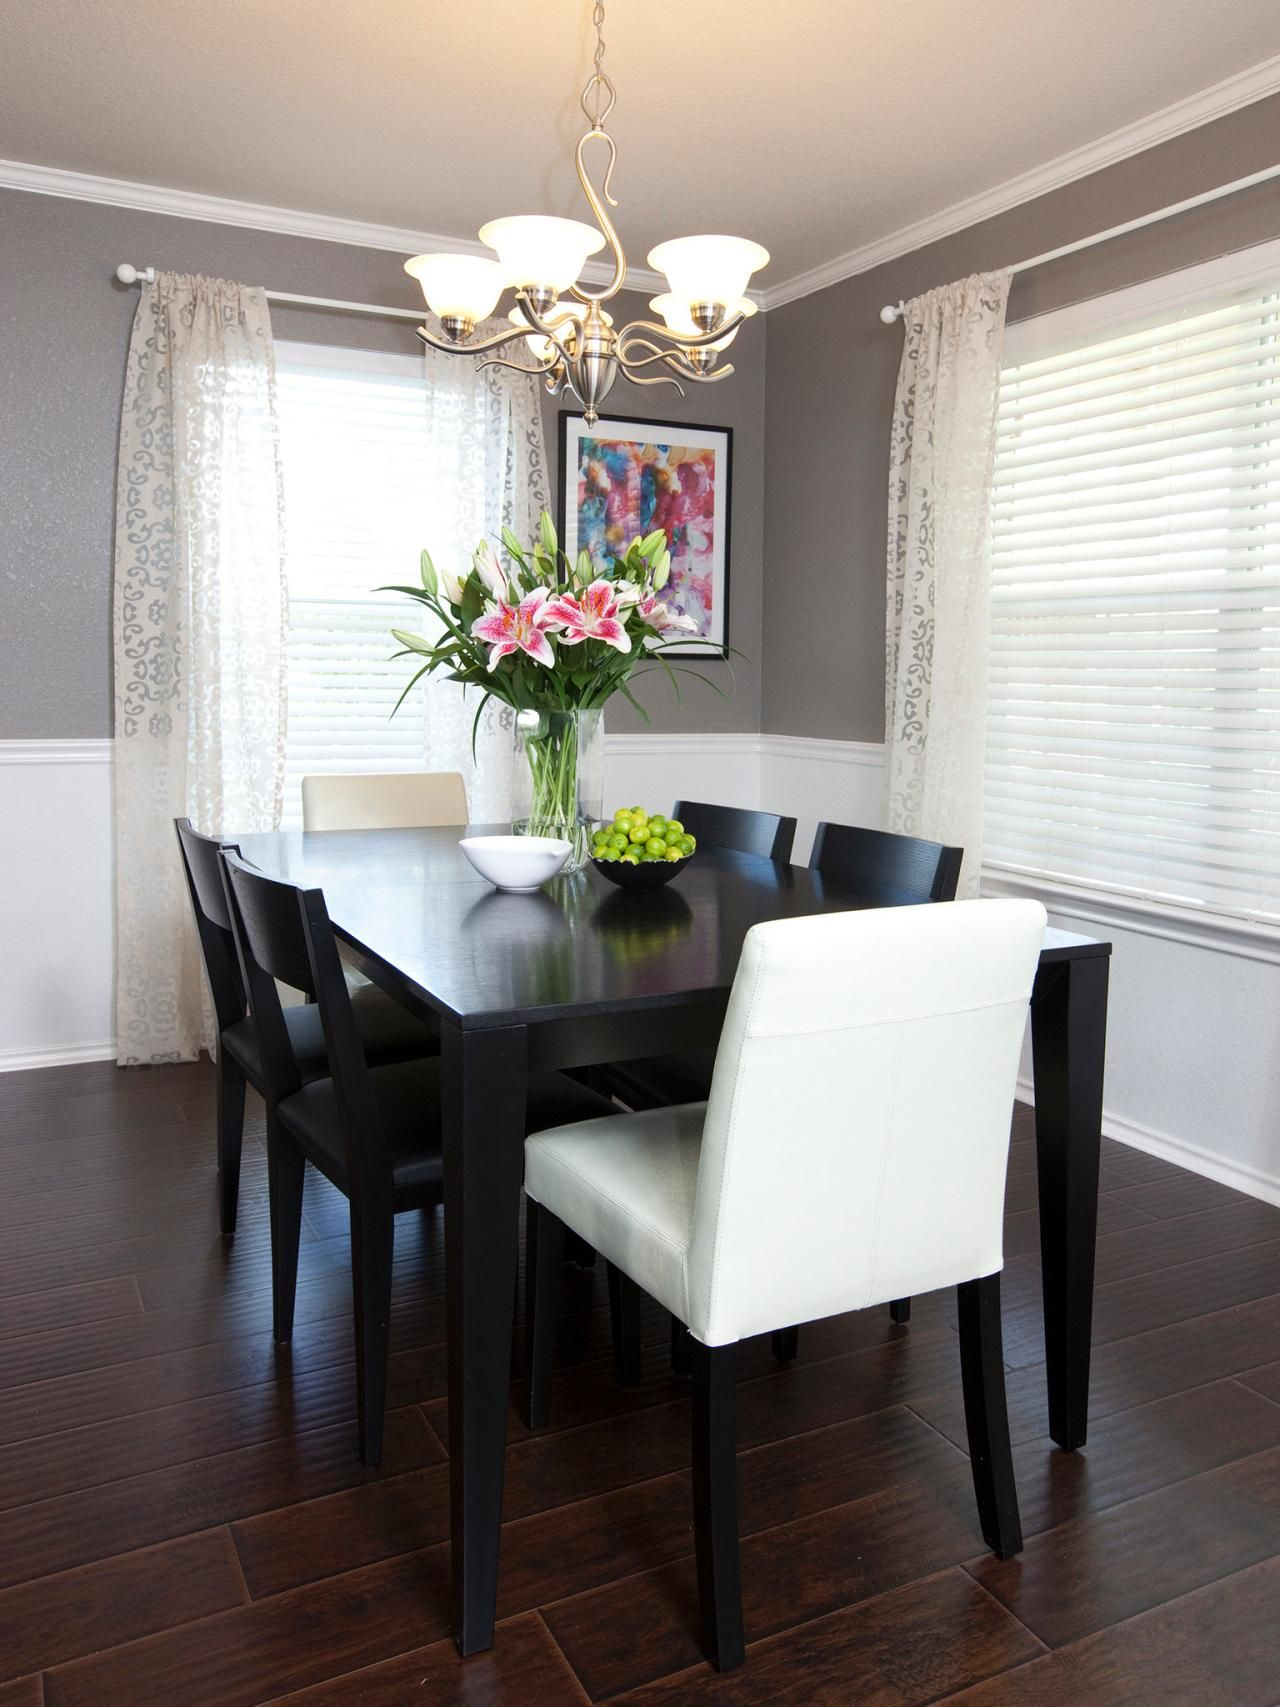 Chair Rail Molding Dining Room - Chair rail molding divides two toned walls in this neutral dining room sheer curtains